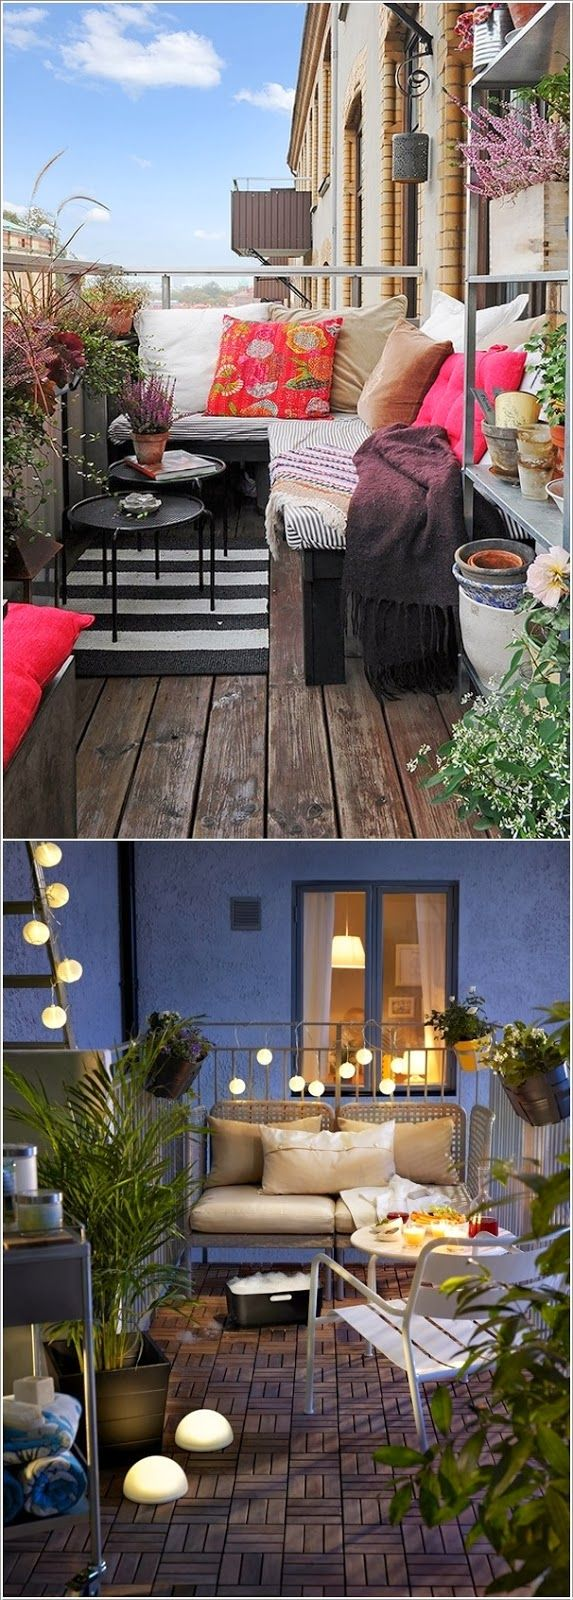 10 Idees De Decoration De Balcons Loggia Balkon Ideen Balkon